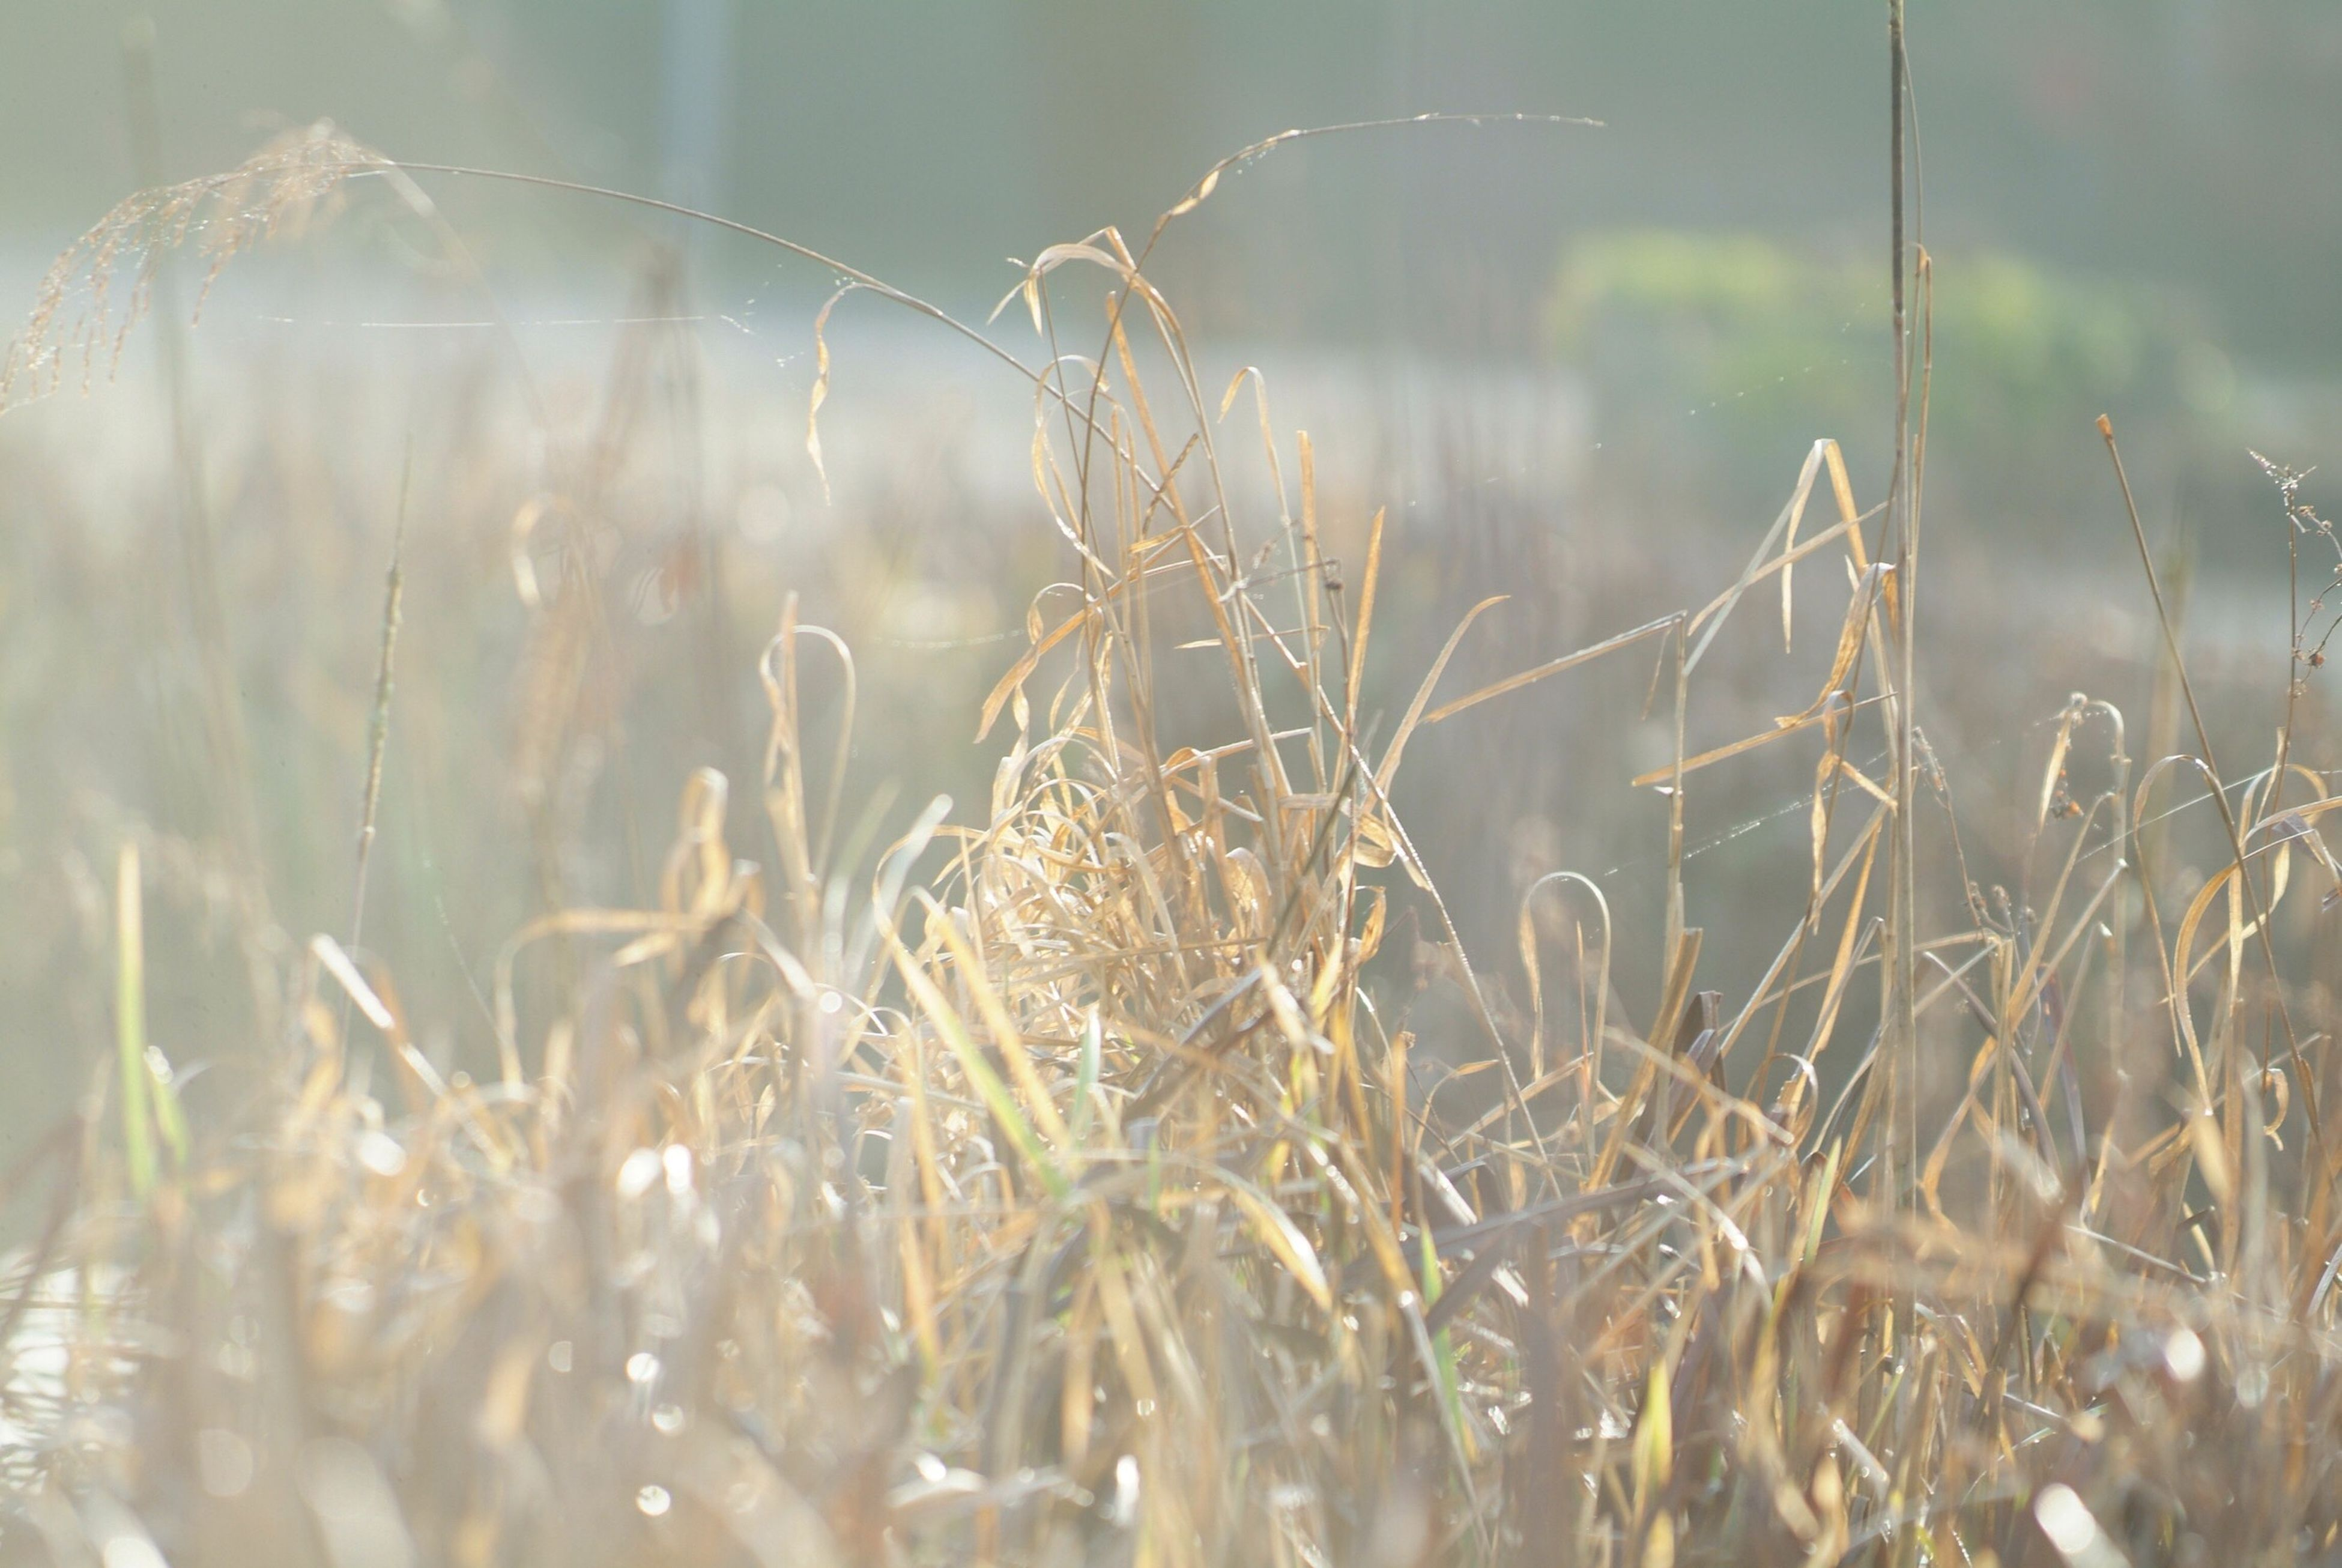 nature, growth, plant, field, cereal plant, no people, close-up, outdoors, rural scene, day, agriculture, beauty in nature, wheat